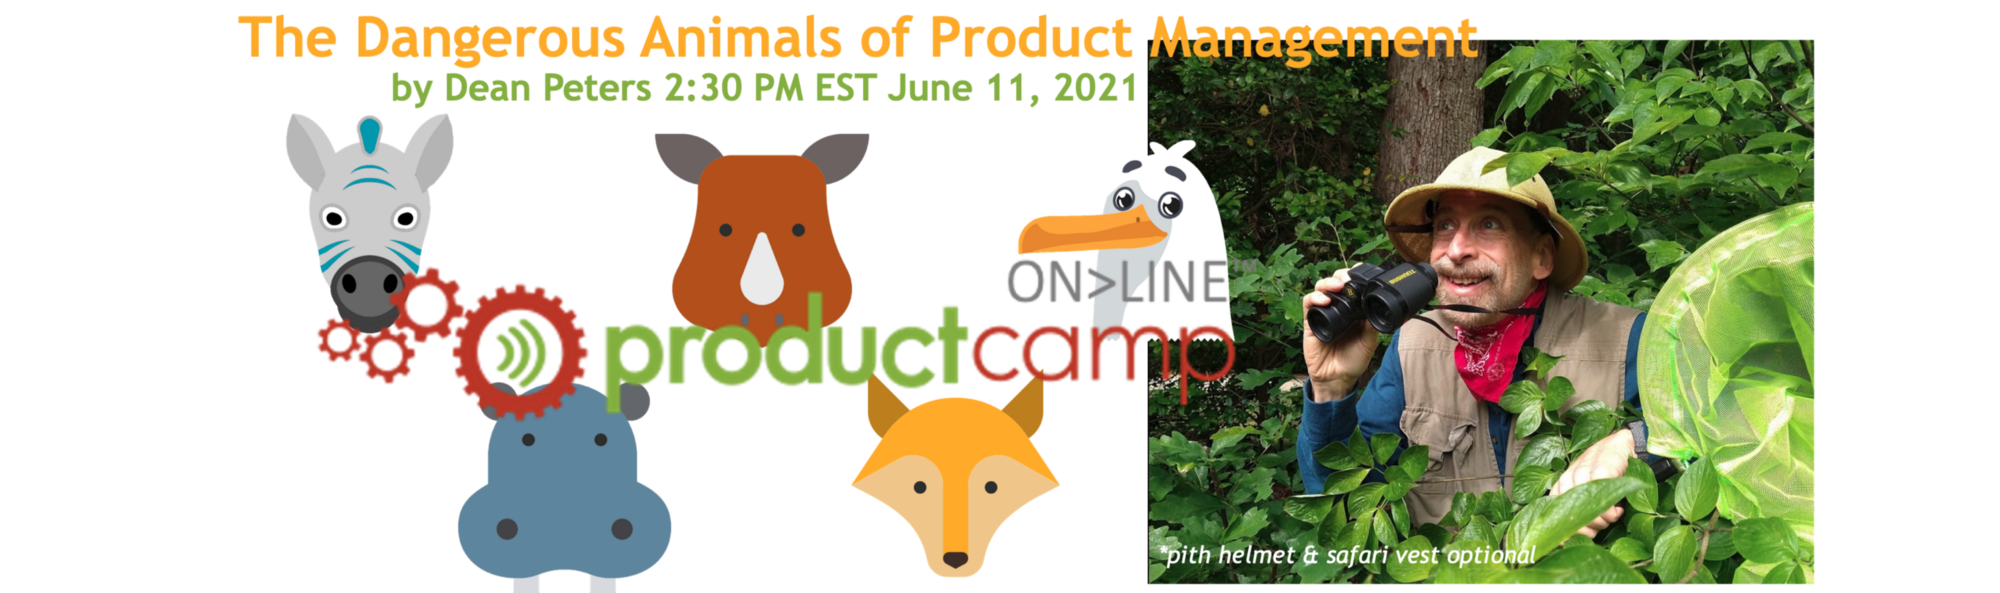 Come join Dean's talk on managing stakeholders while staying true to your product strategy, 2:35PM EST, June 11, 2021. Pith helmet optional.